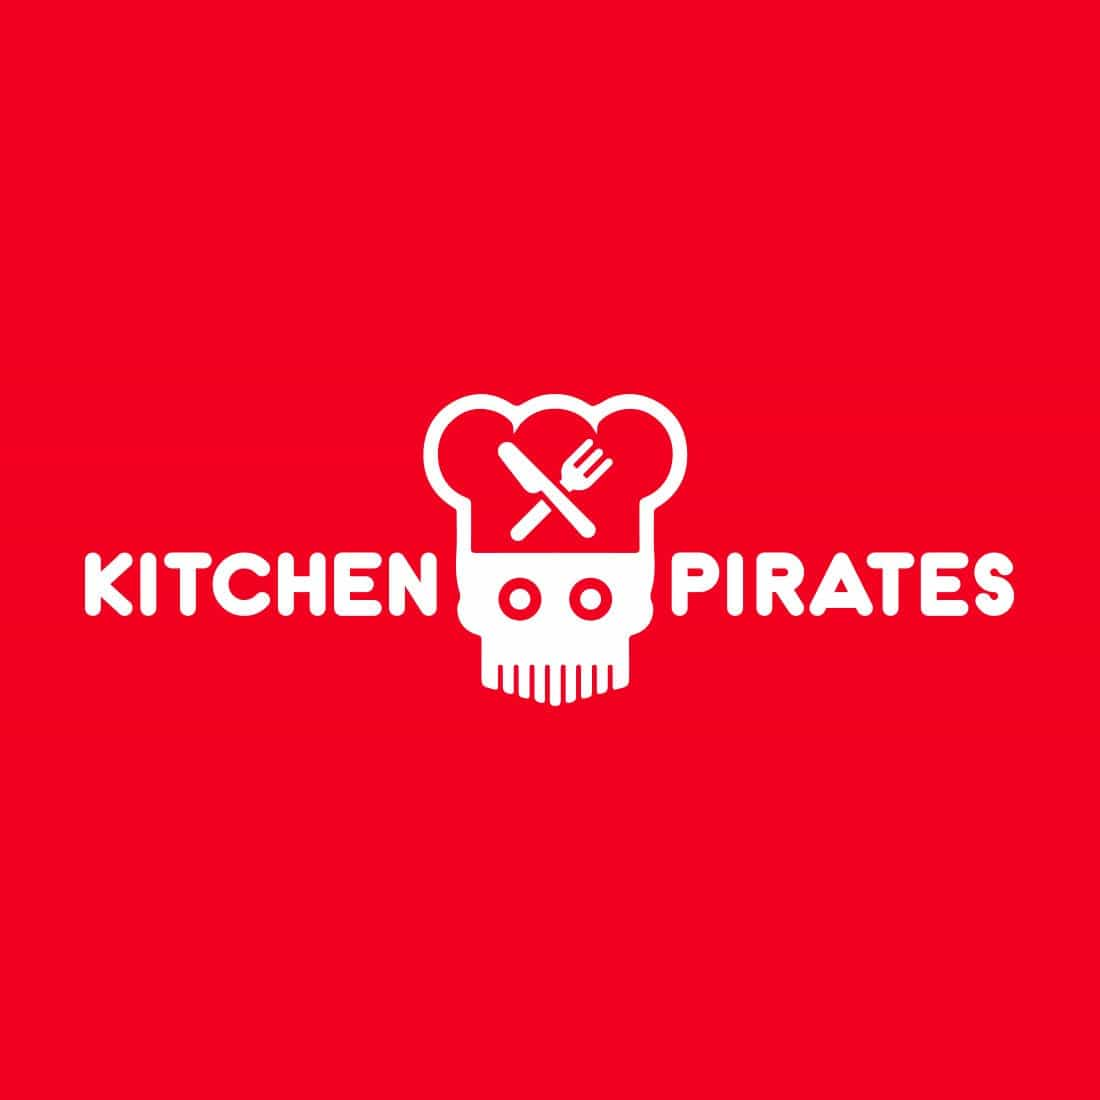 Kitchen-Pirates-Teaser